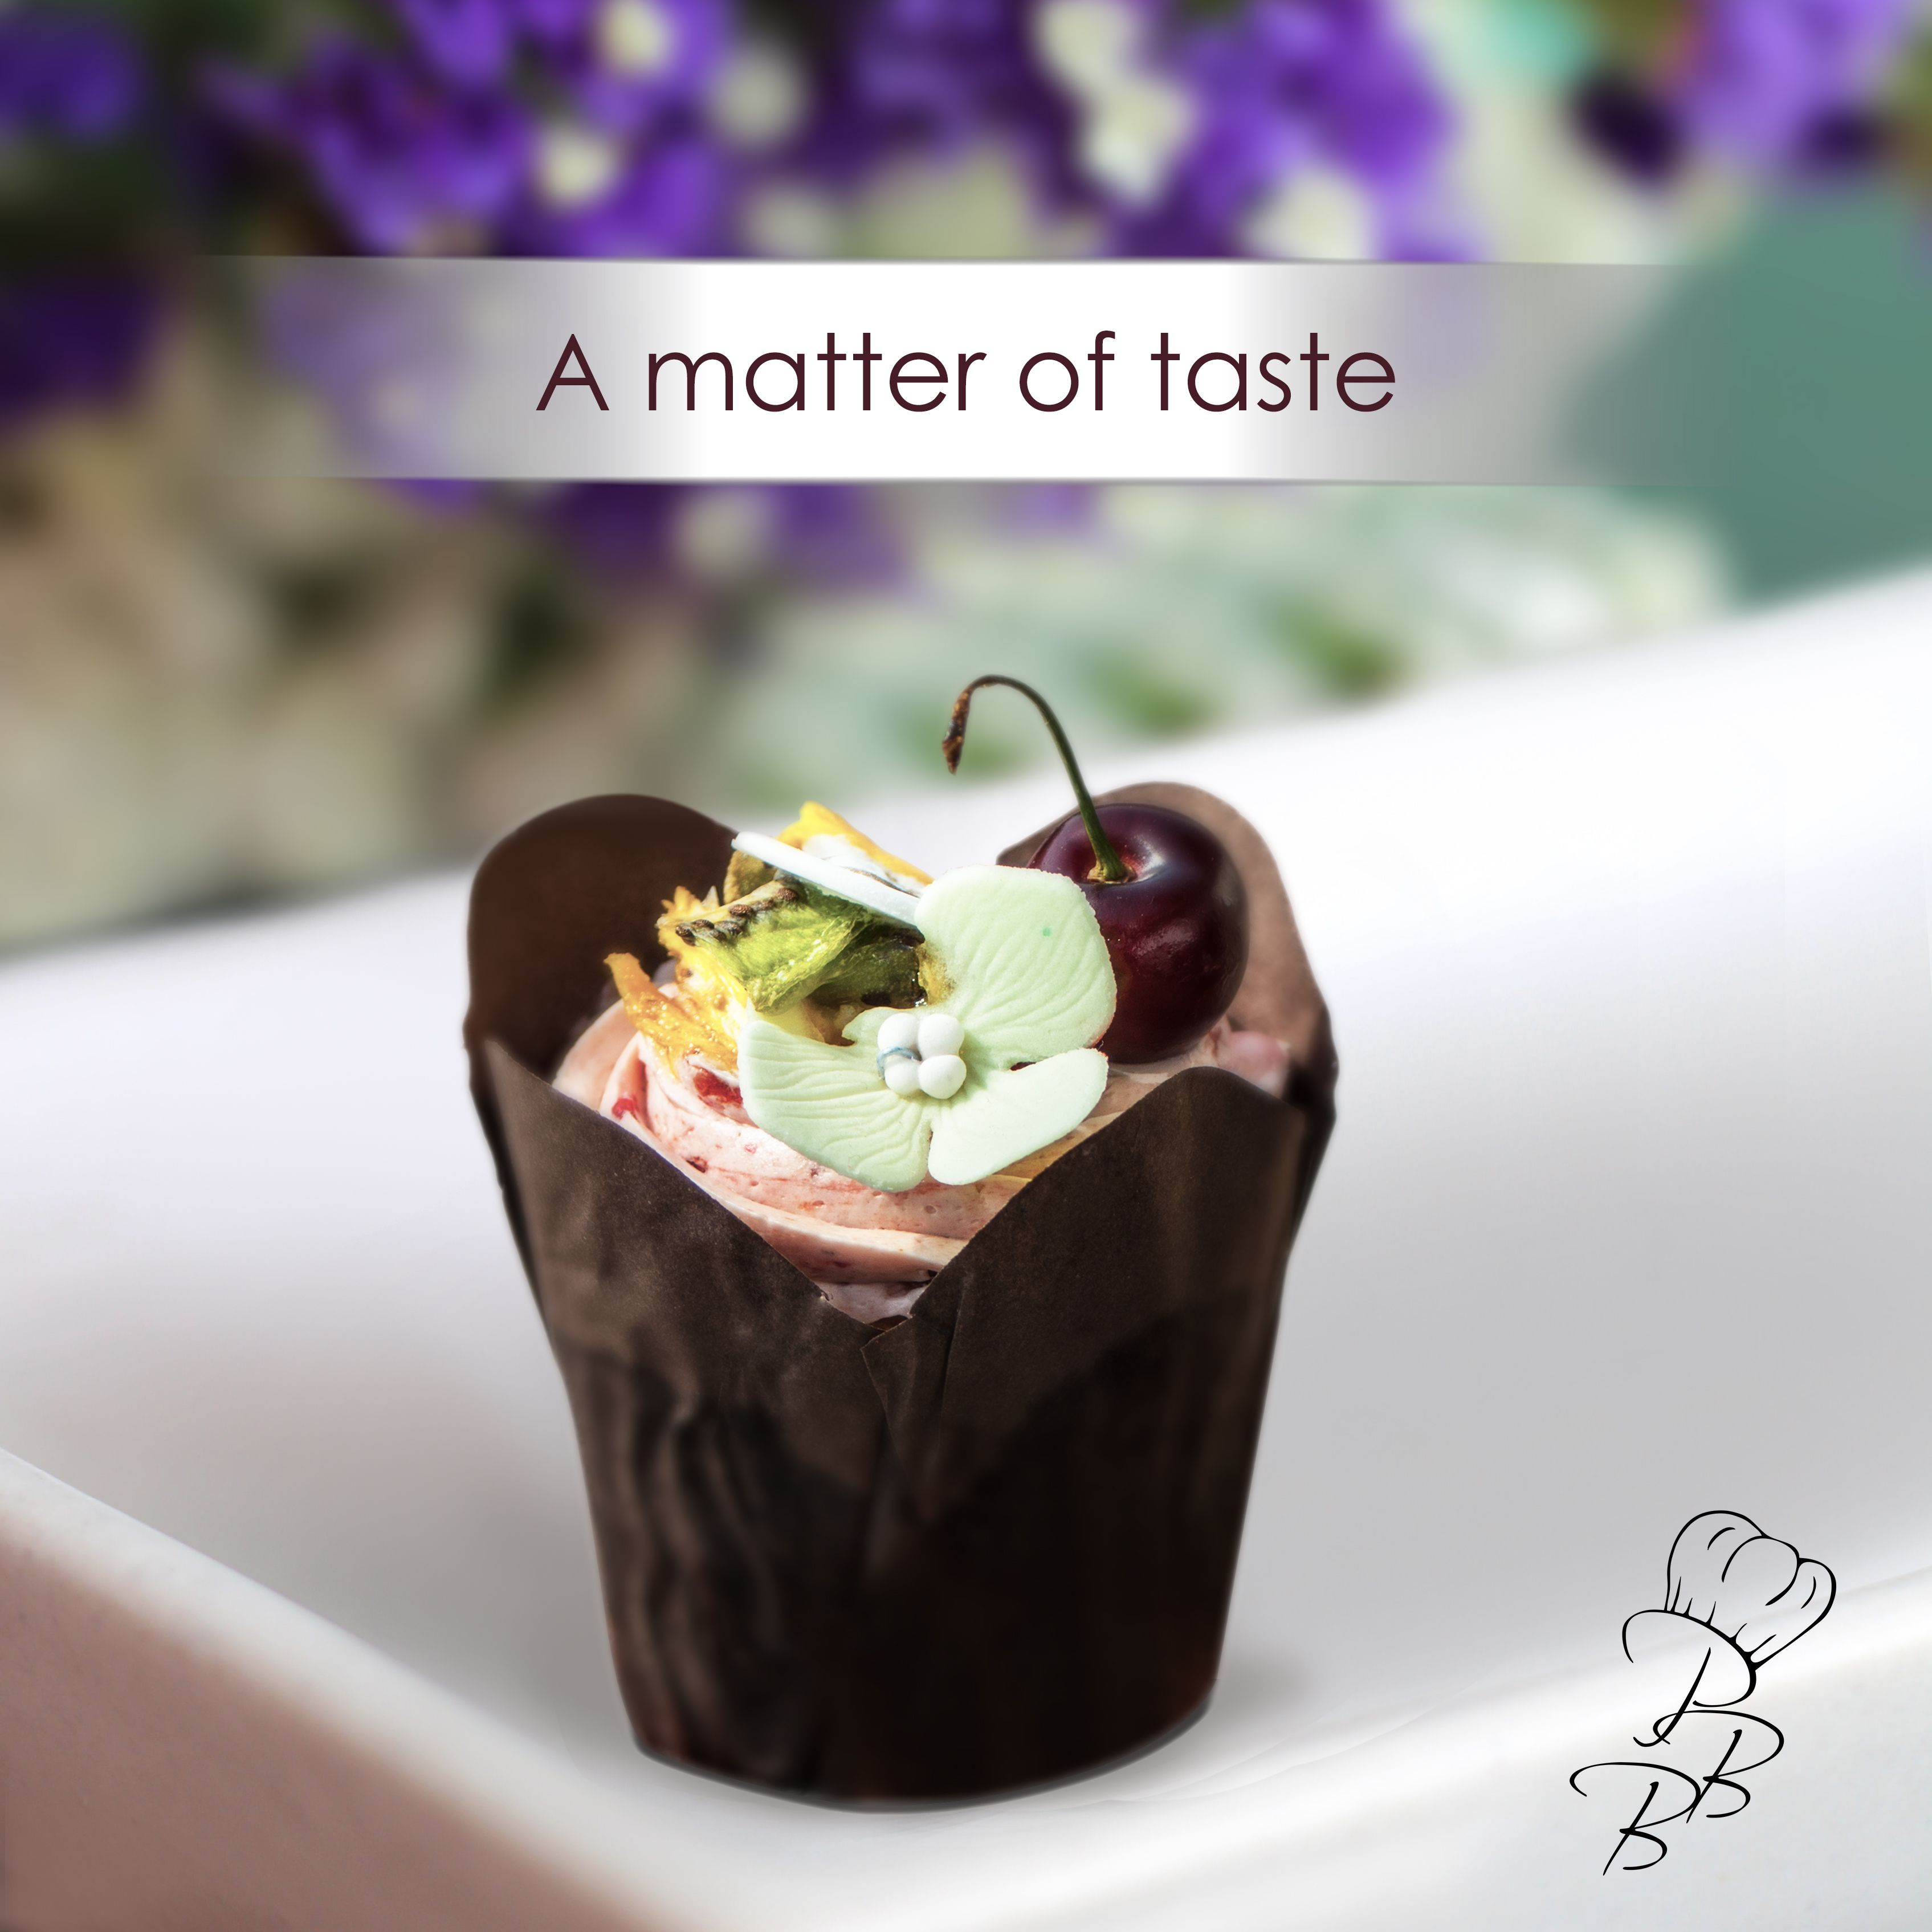 Have you had a cup cake today visit us select citywalk